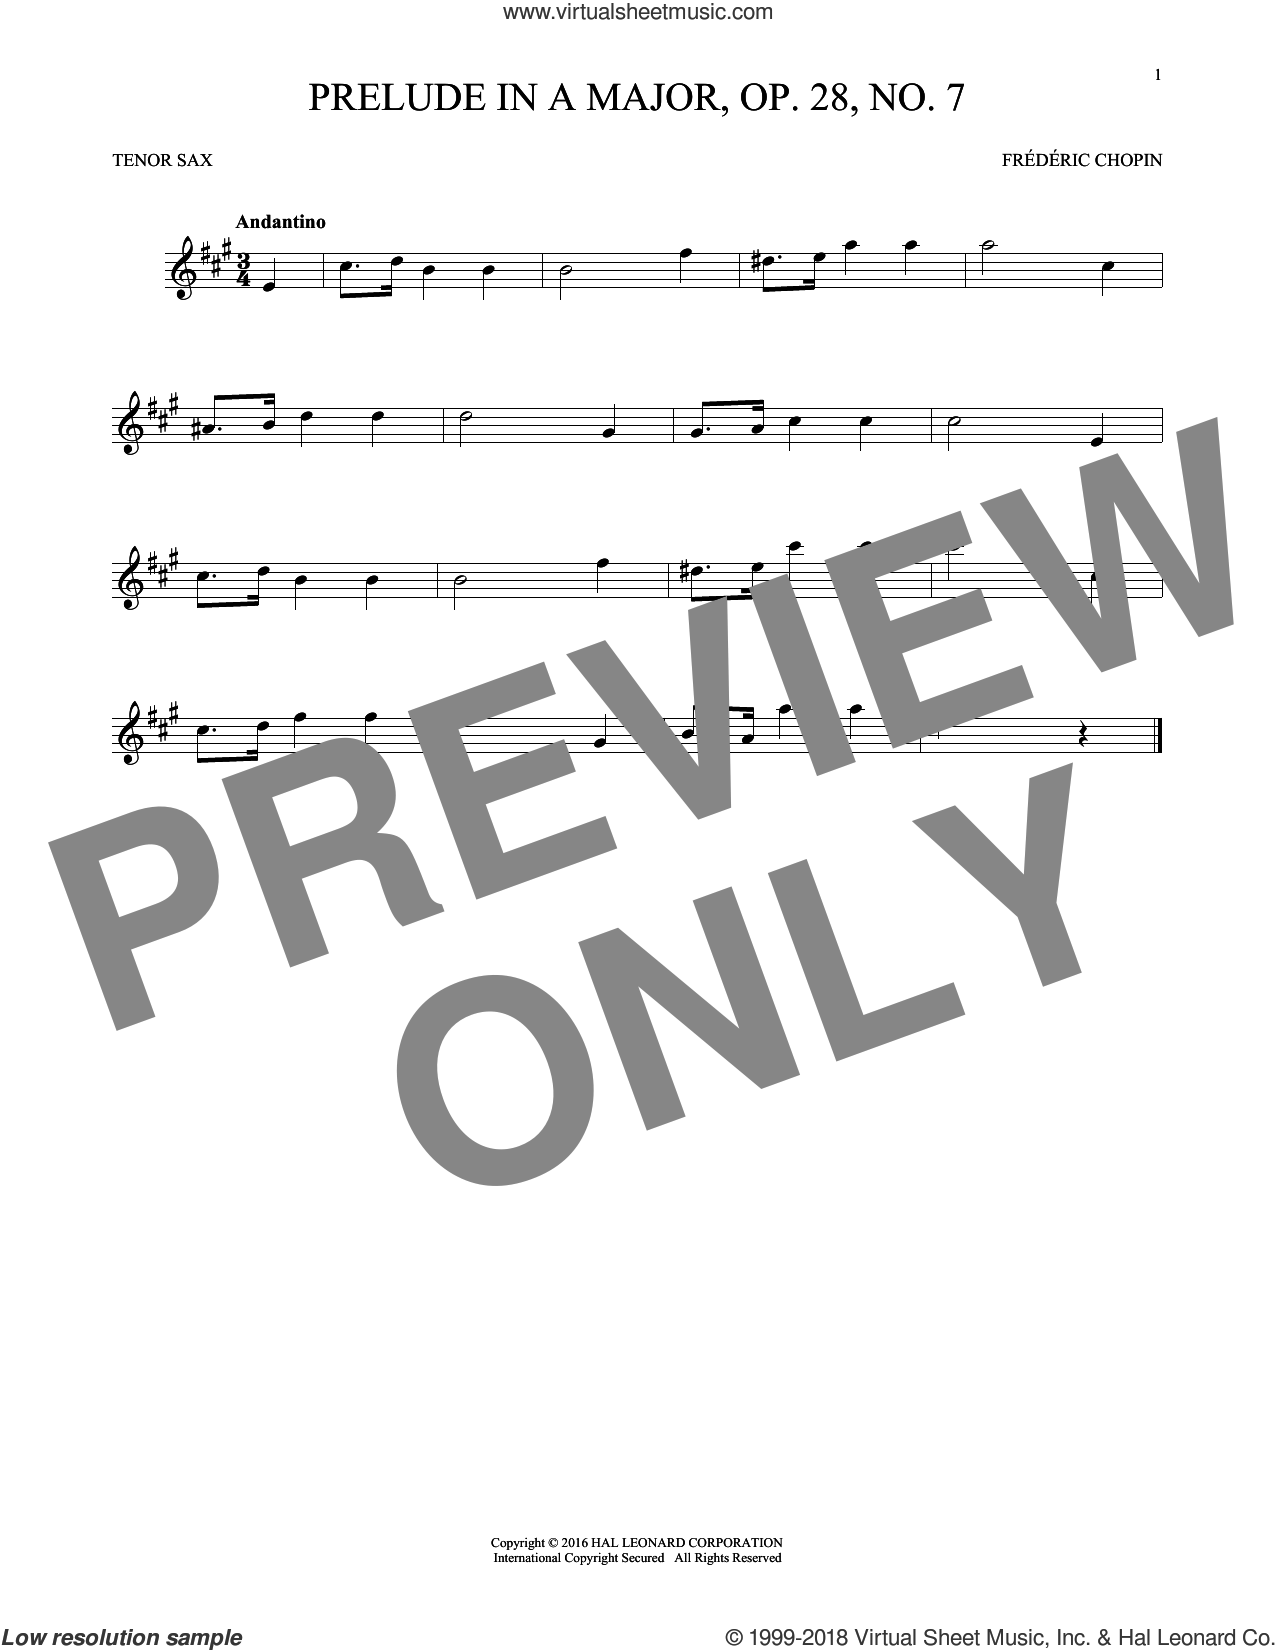 Prelude In A Major, Op. 28, No. 7 sheet music for tenor saxophone solo by Frederic Chopin, classical score, intermediate skill level